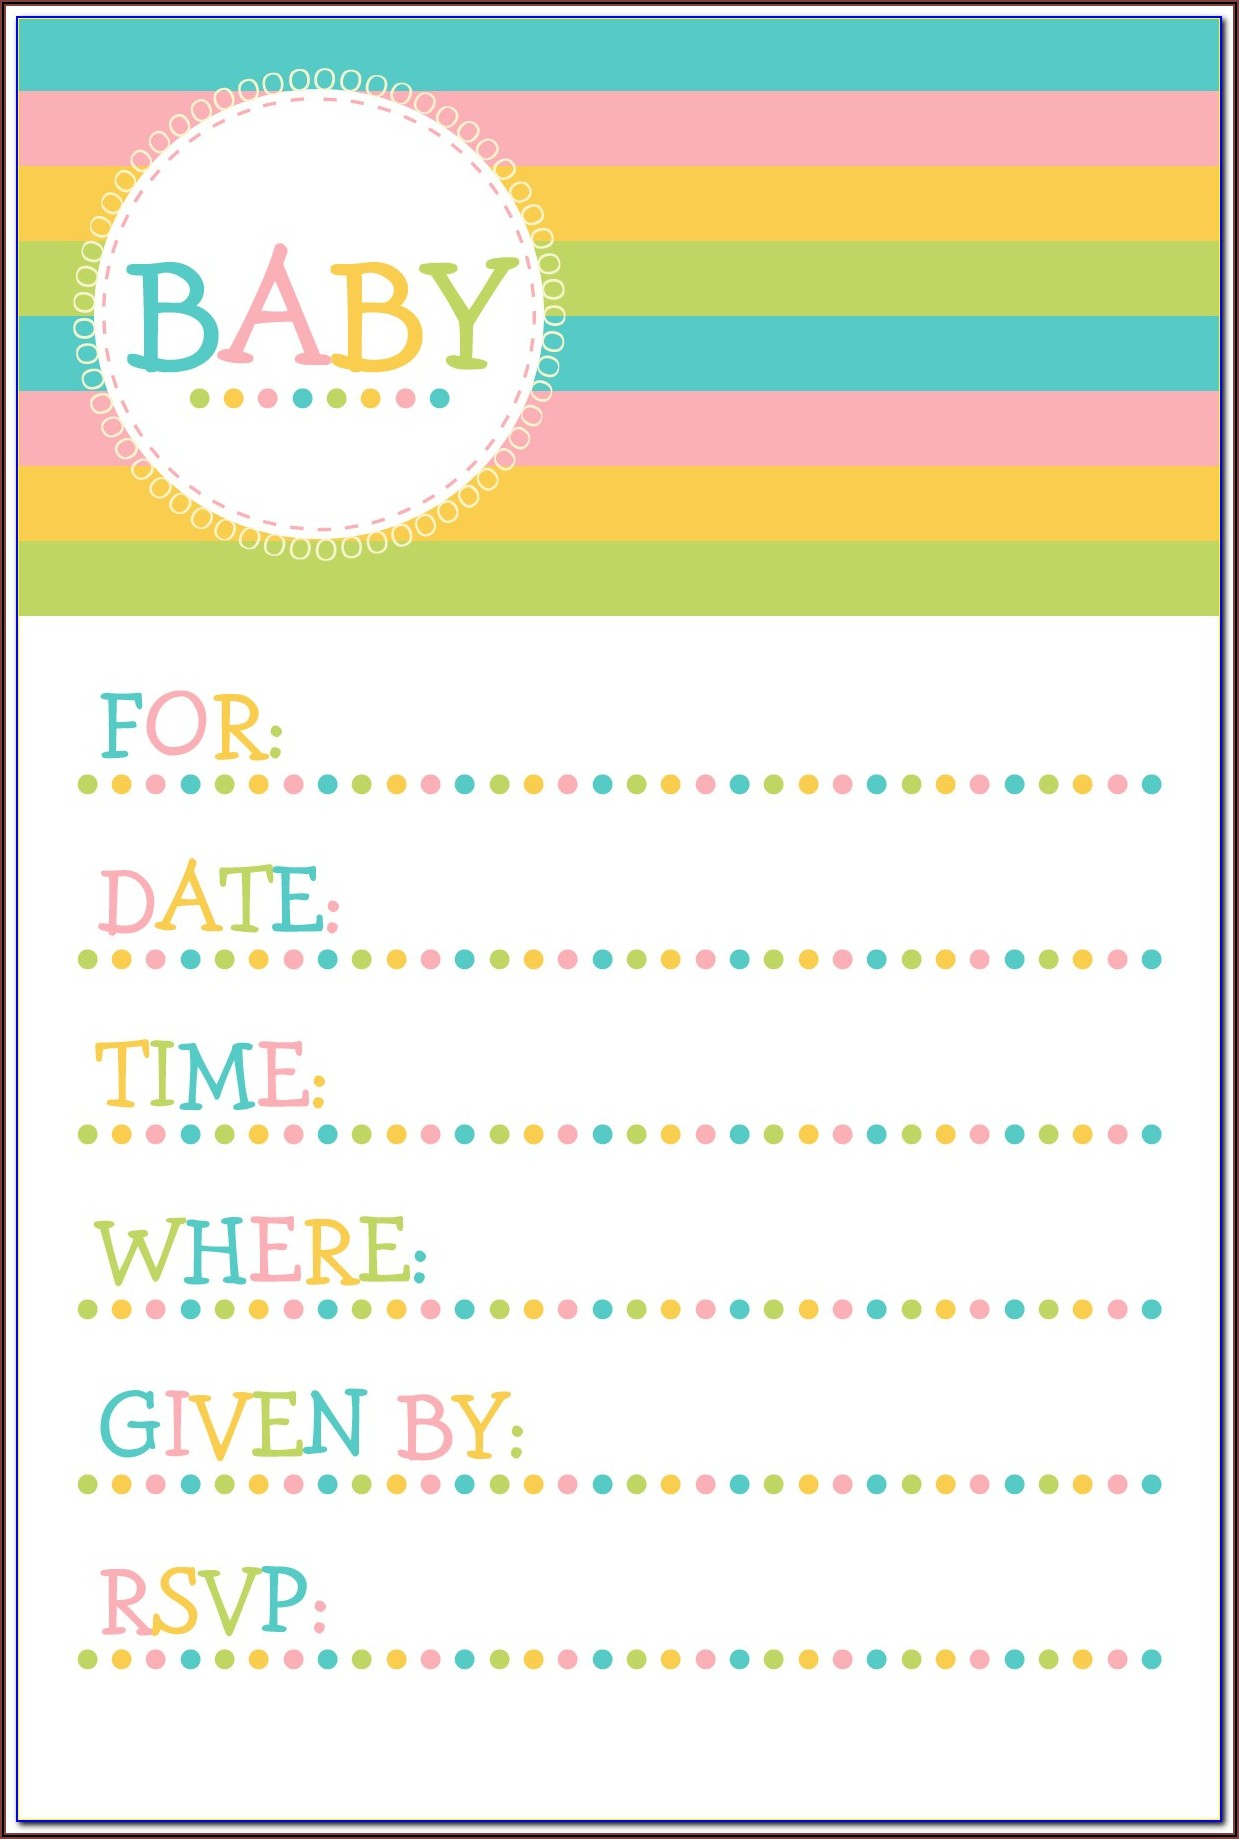 Baby Boy Birthday Invitations Templates Free